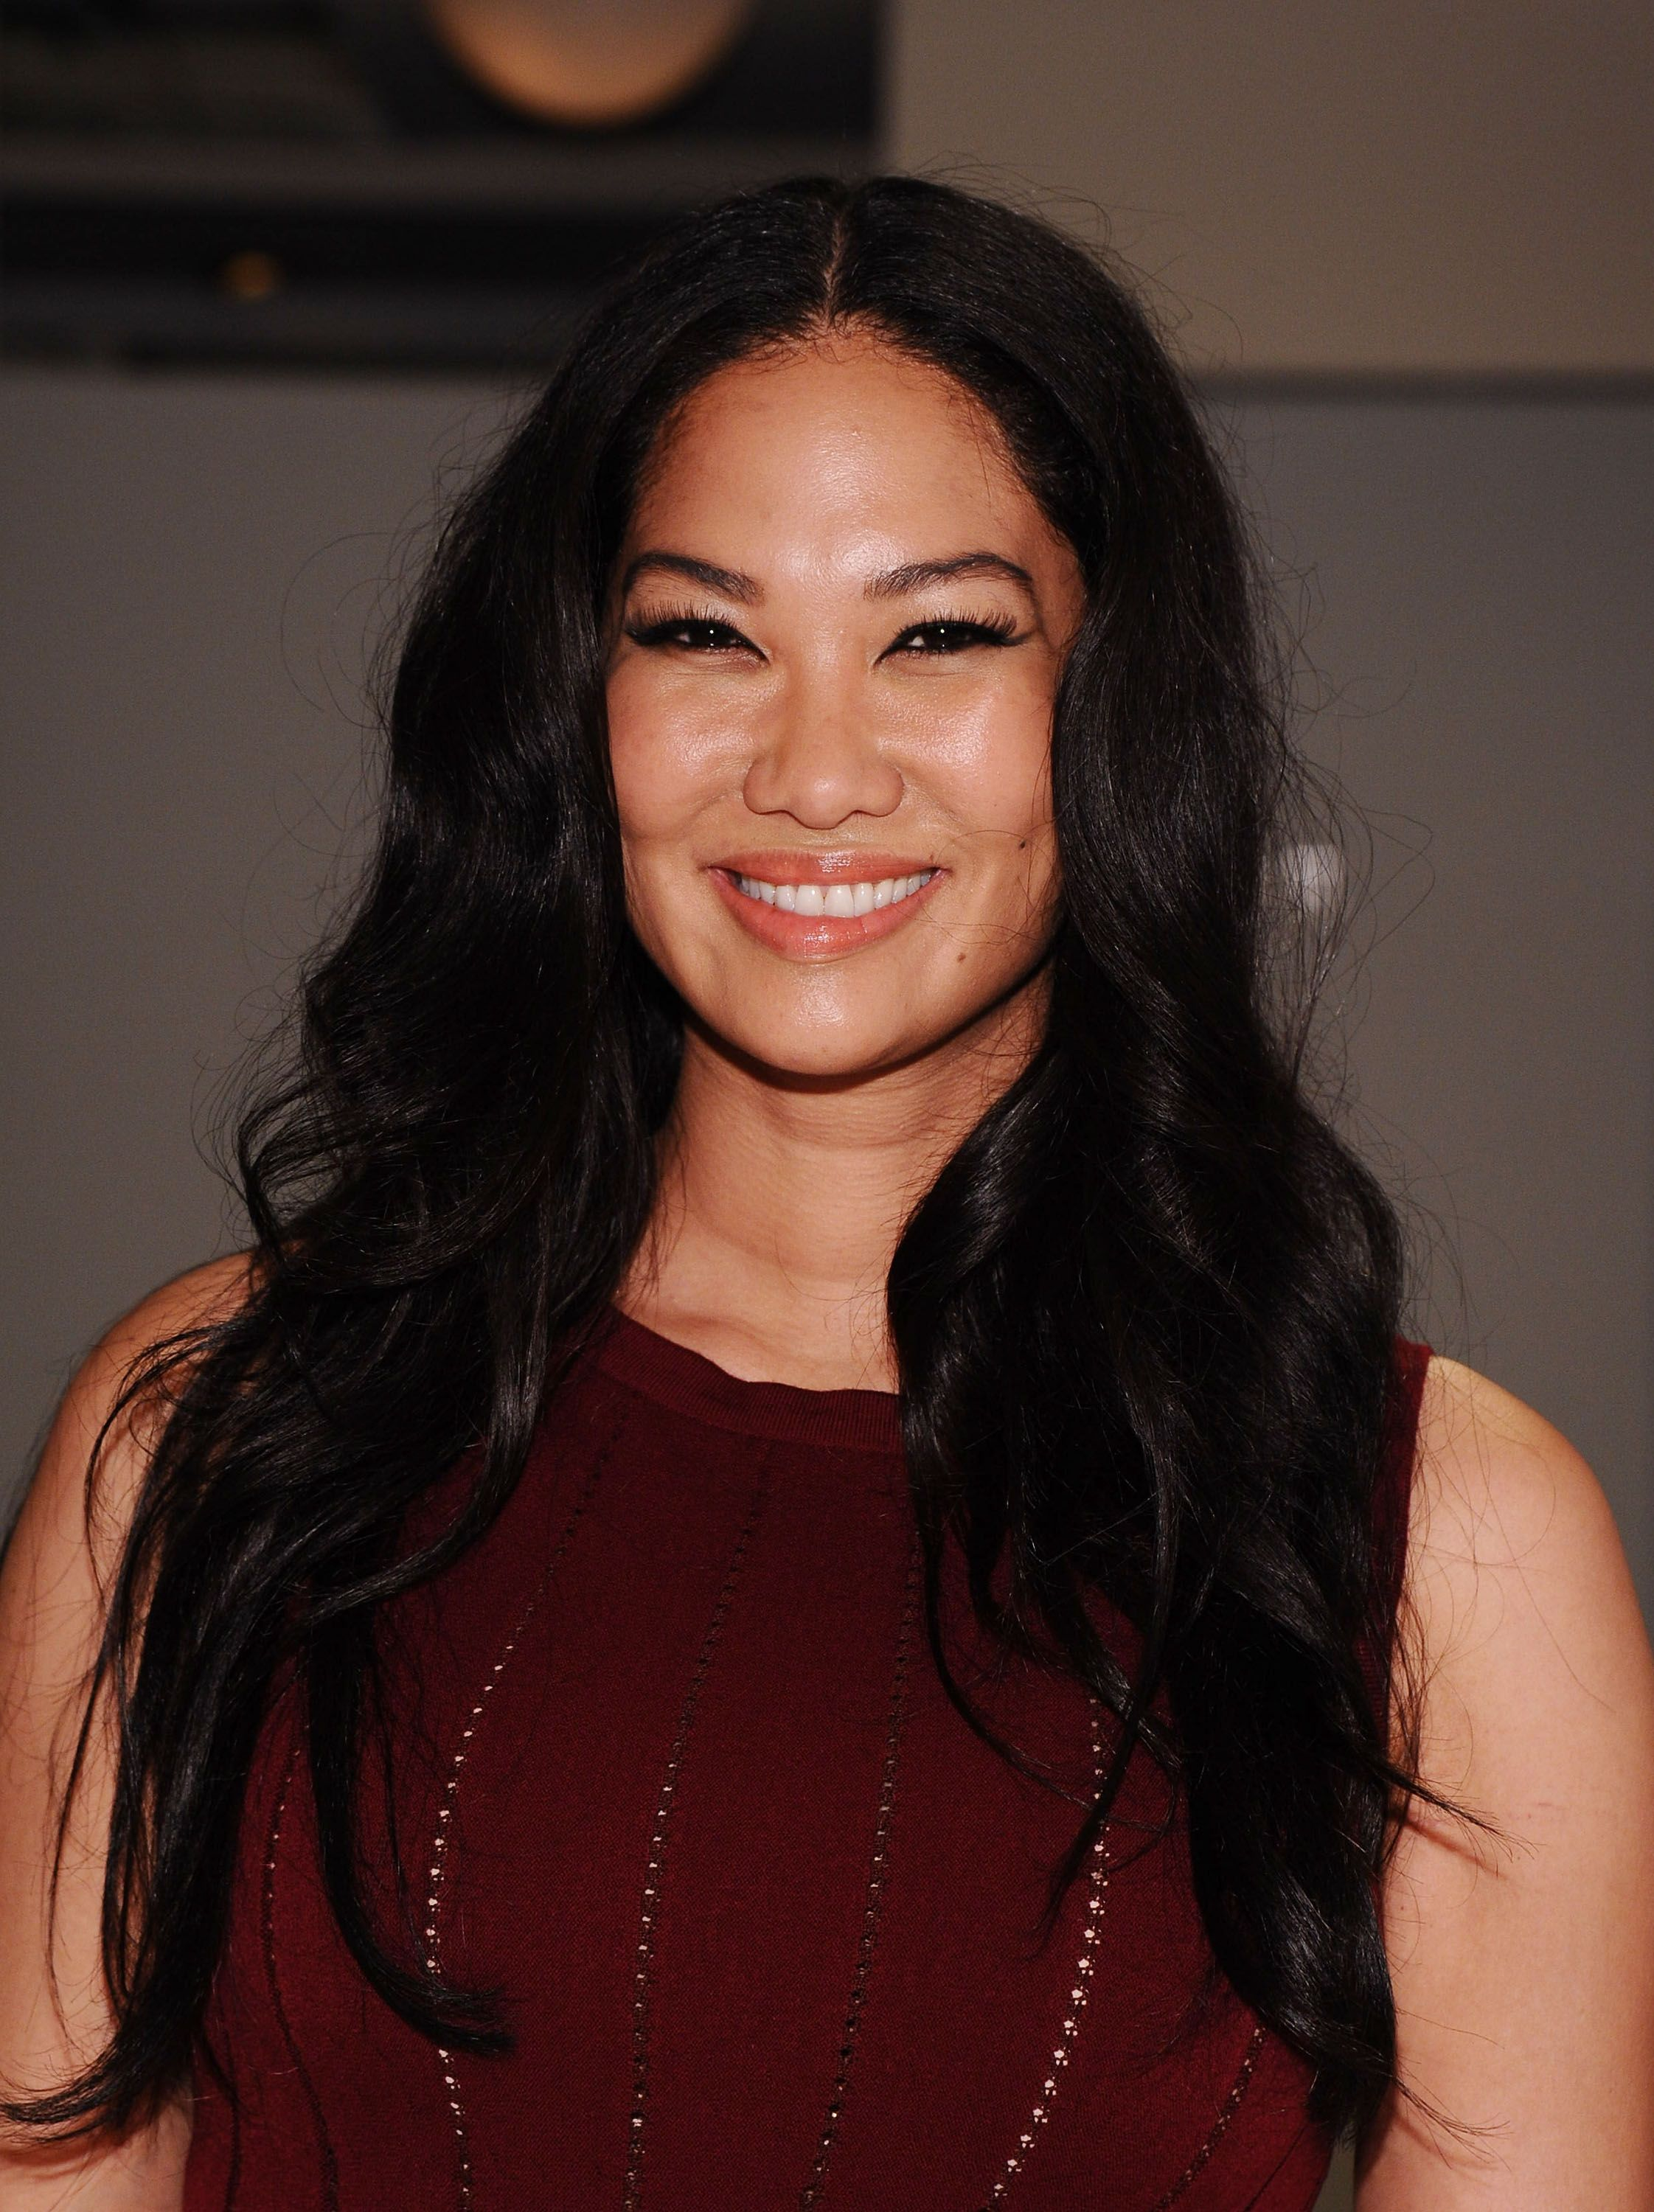 Kimora Lee Simmons at the Argyleculture By Russell Simmons fashion show during Mercedes-Benz Fashion Week Spring 2015 at Helen Mills Event Space on September 5, 2014 in New York City.   Photo: Getty Images